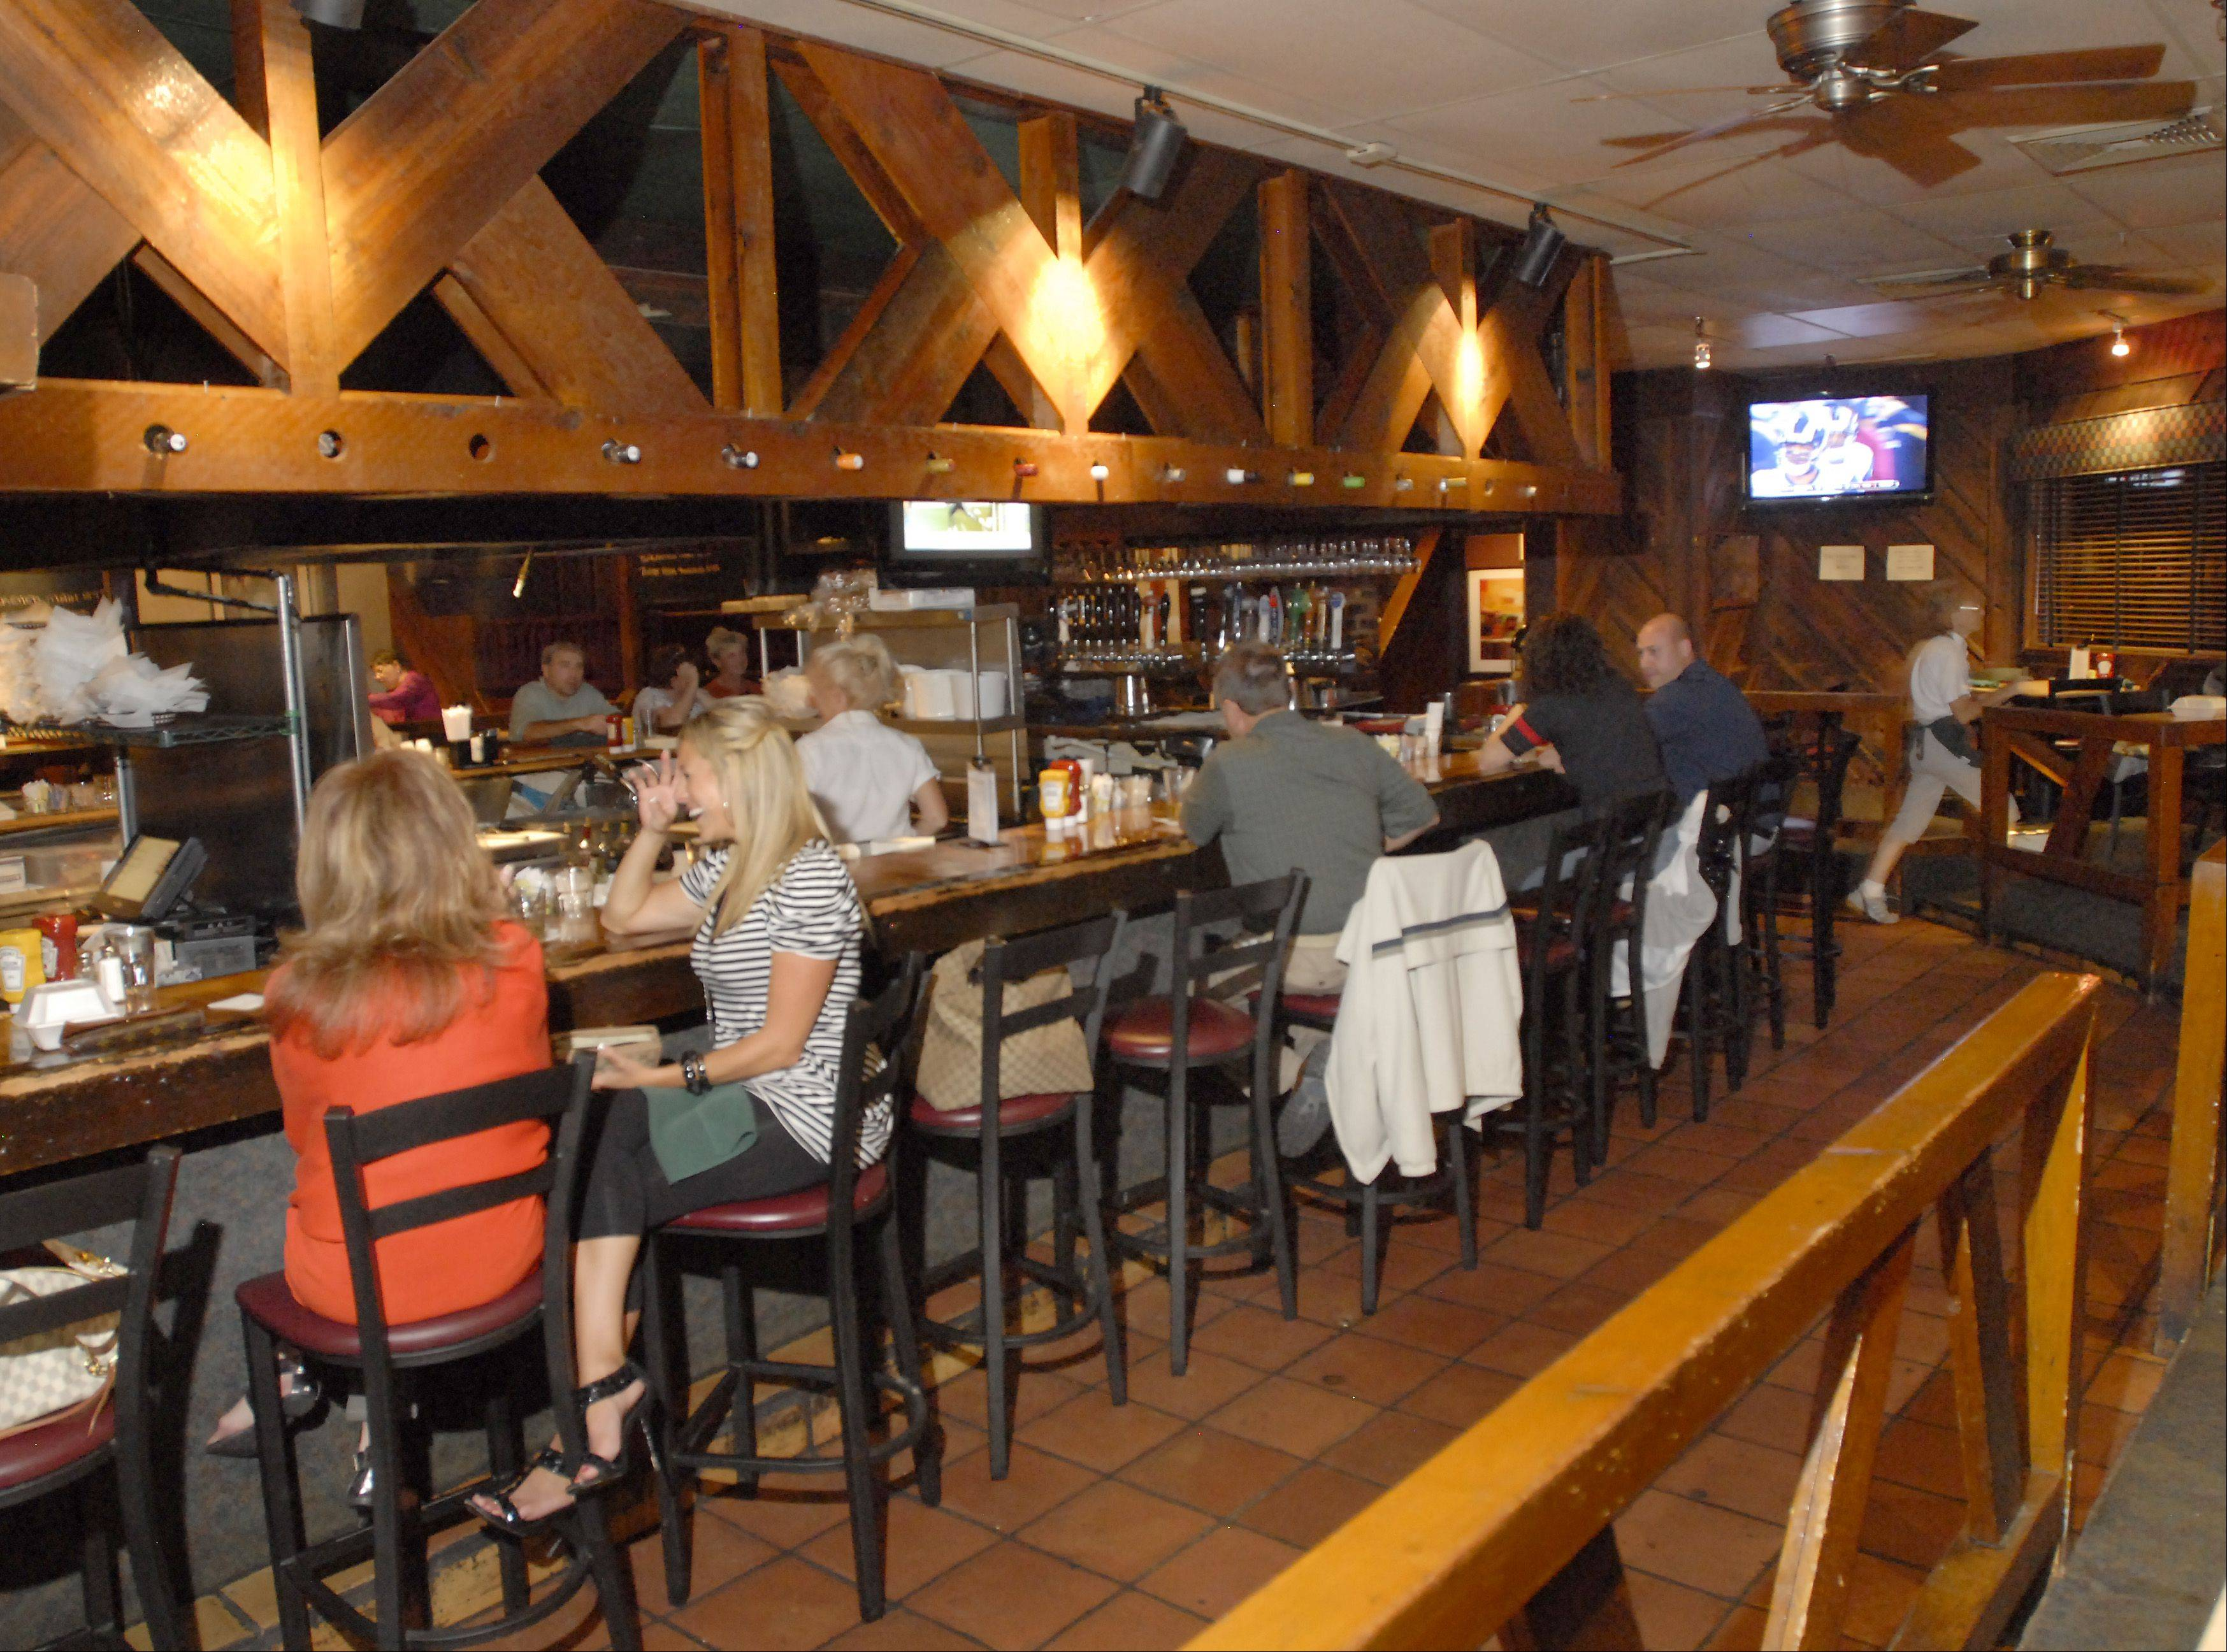 The Assembly American Bar & Café in Hoffman Estates is known for its burgers and locally brewed beer.